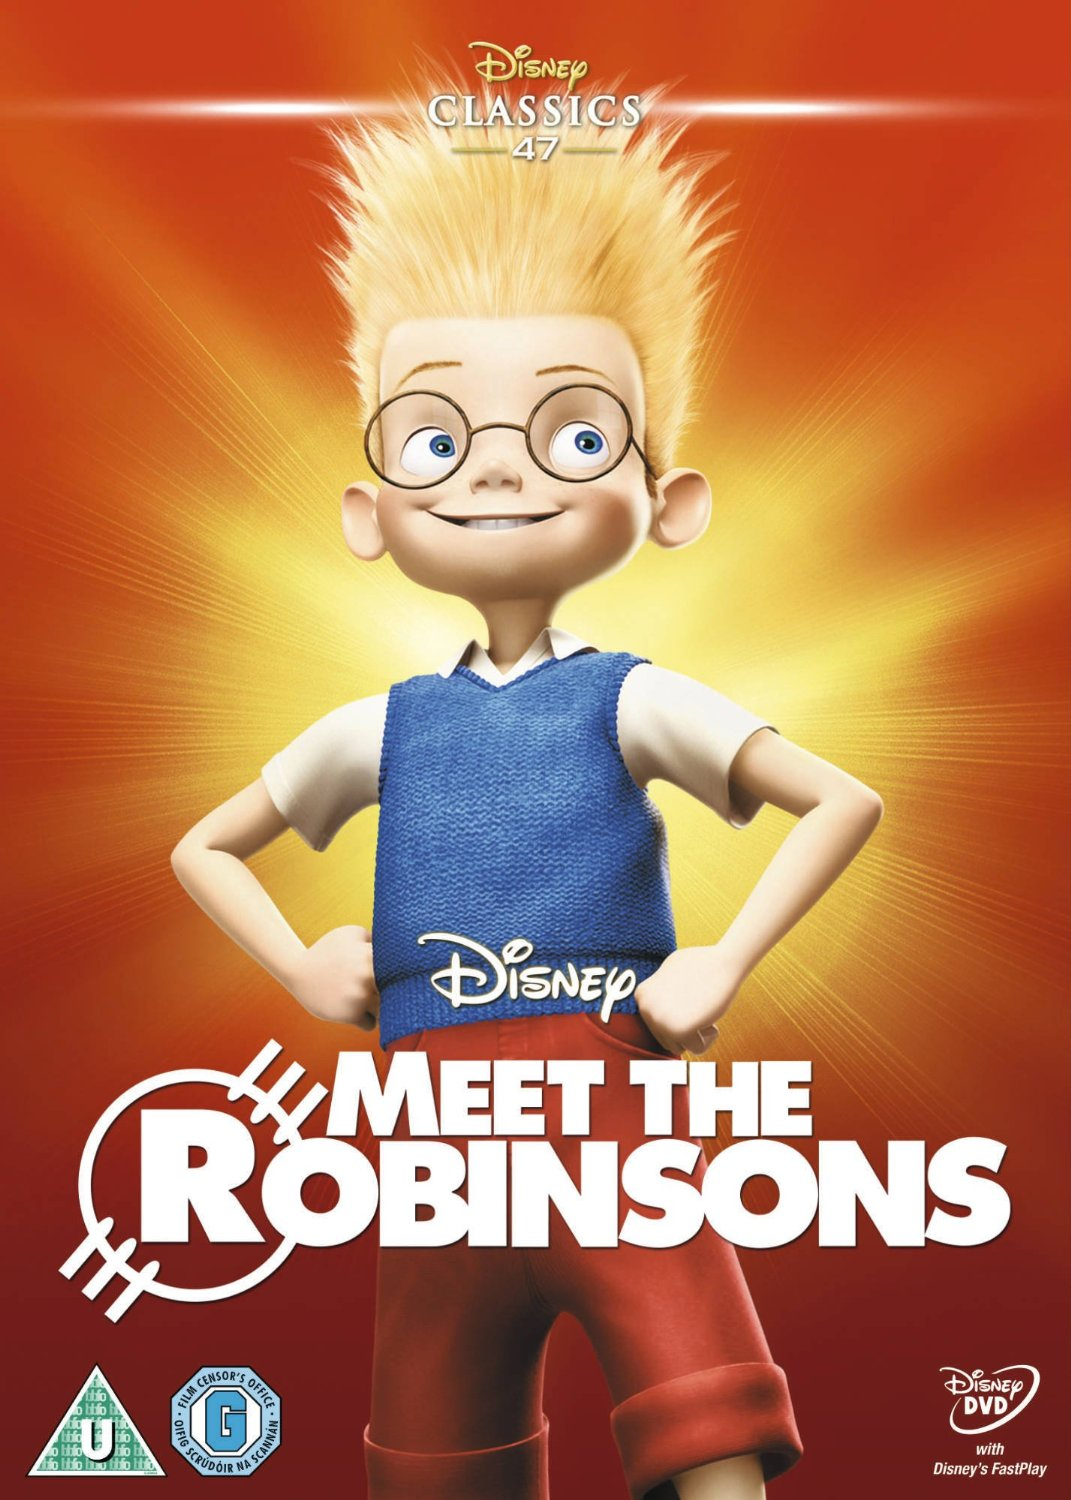 meet the robinsons soundtrack rufus wainwright